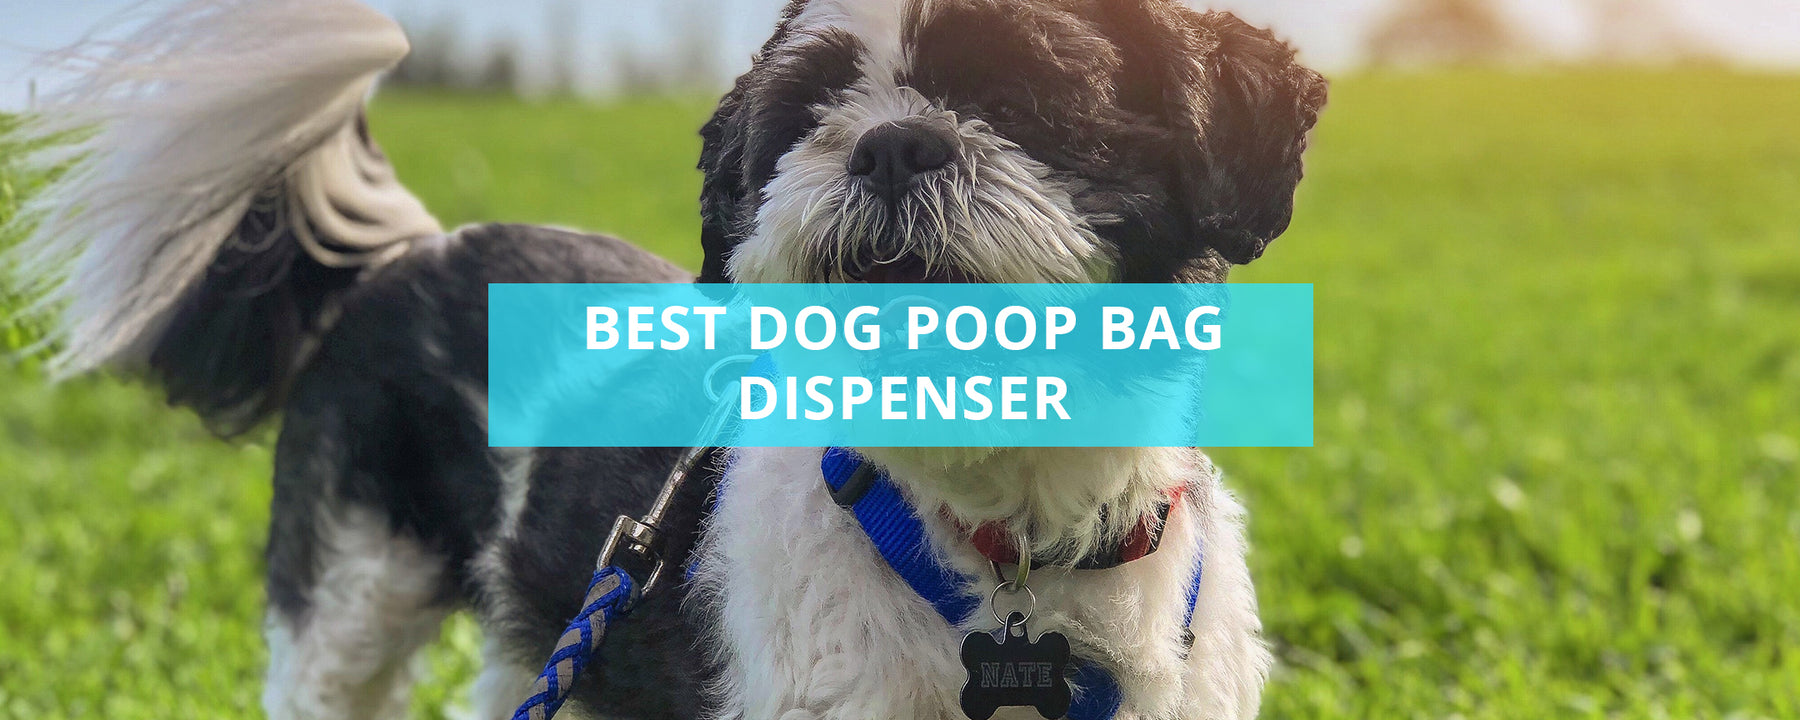 Best Dog Poop Bag Dispenser